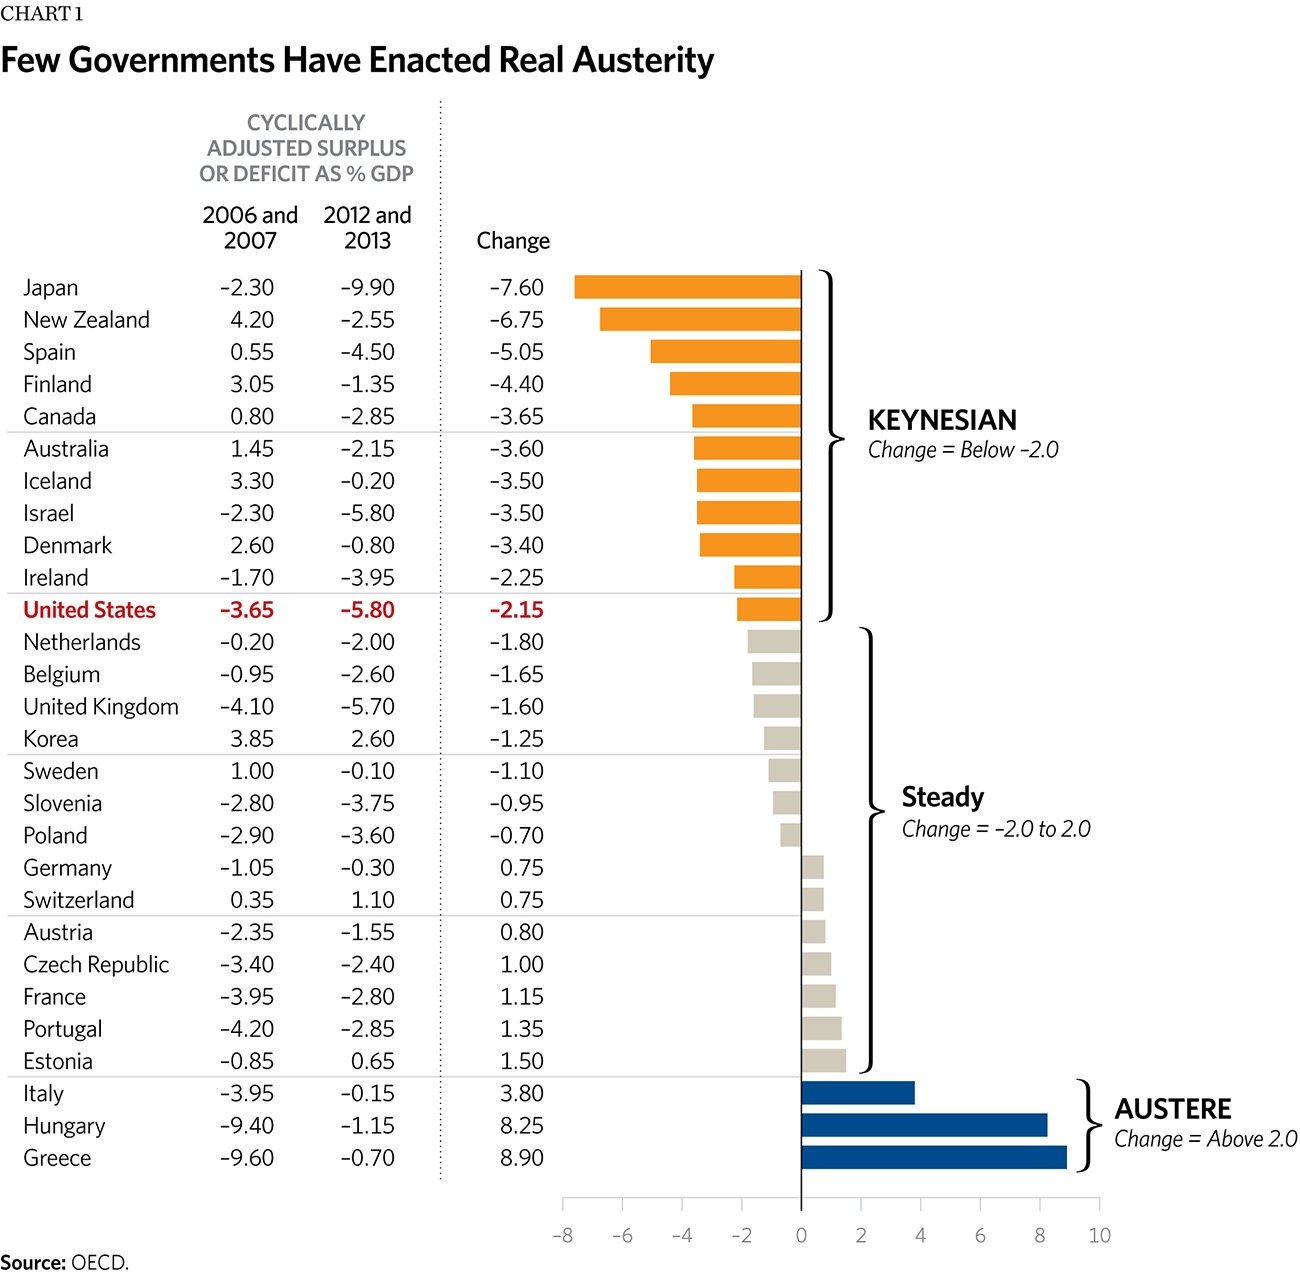 Few Governments Have Enacted Real Austerity